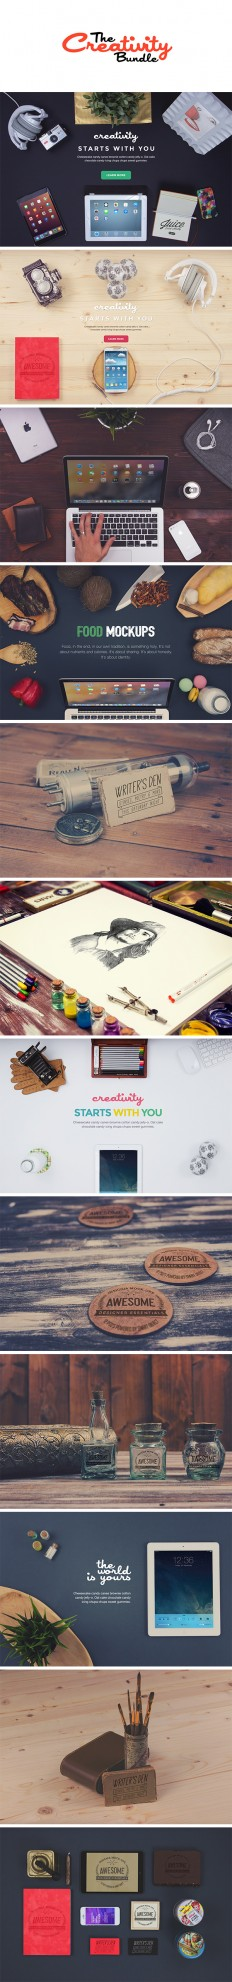 Creativity Free Bundle on Inspirationde